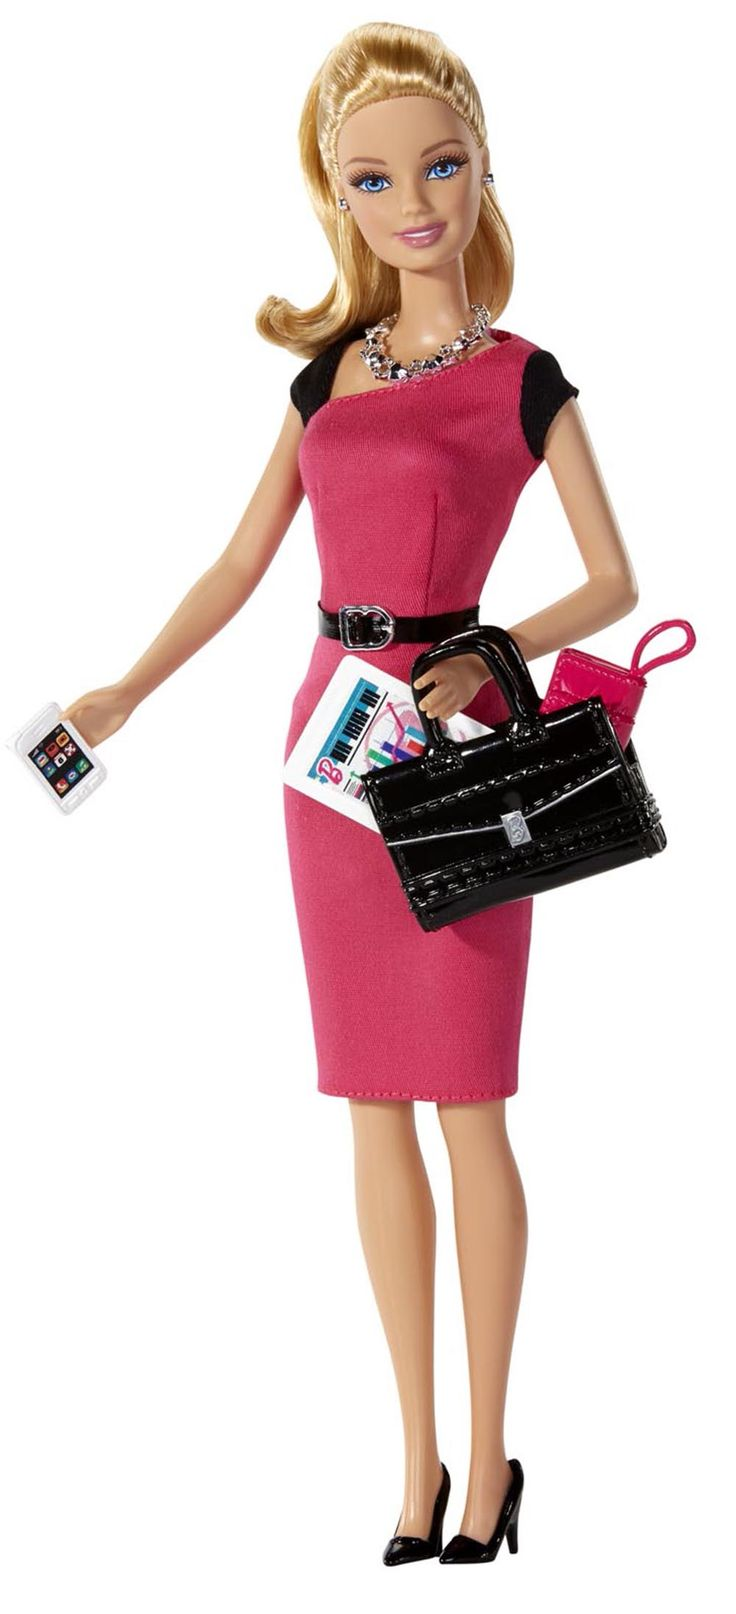 Barbie deluxe furniture stovetop to tabletop kitchen doll target - Your First Look At Entrepreneur Barbie Smartphone And All